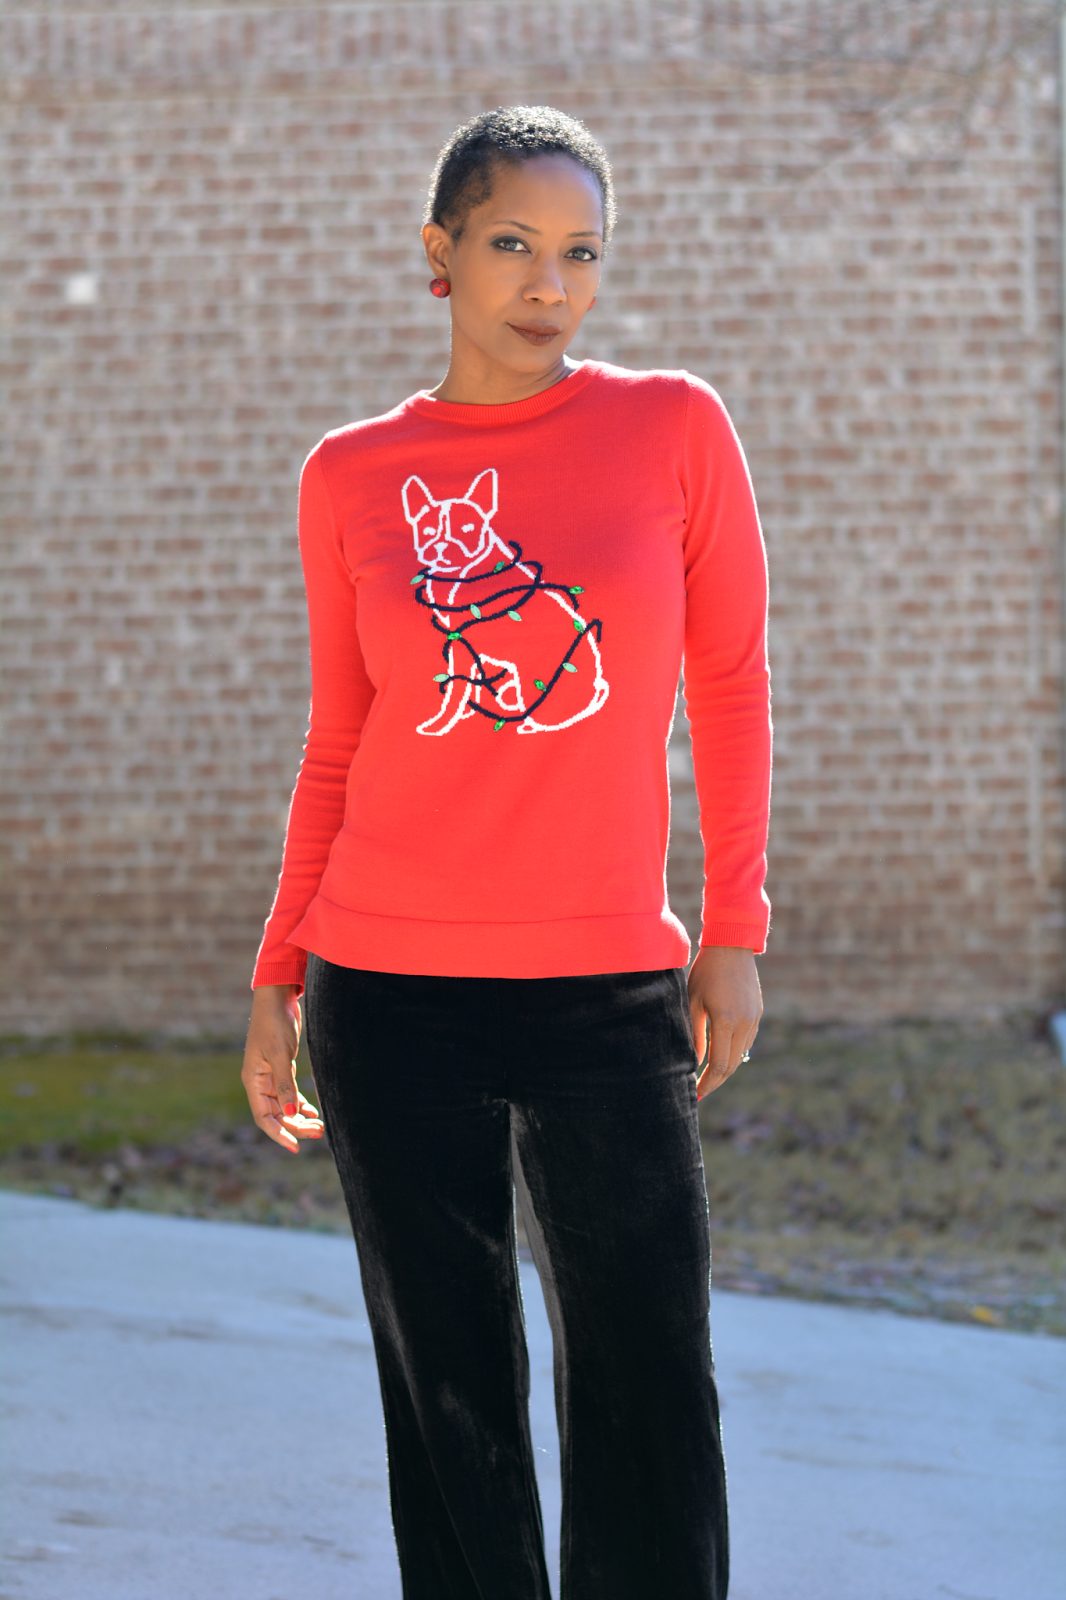 0fe59997d6878 ... #crownandivy ad, velvet pants, ugly christmas sweater, cute christmas  sweater, terrier dog christmas sweater, velvet flare pants, holiday outfit,  ...